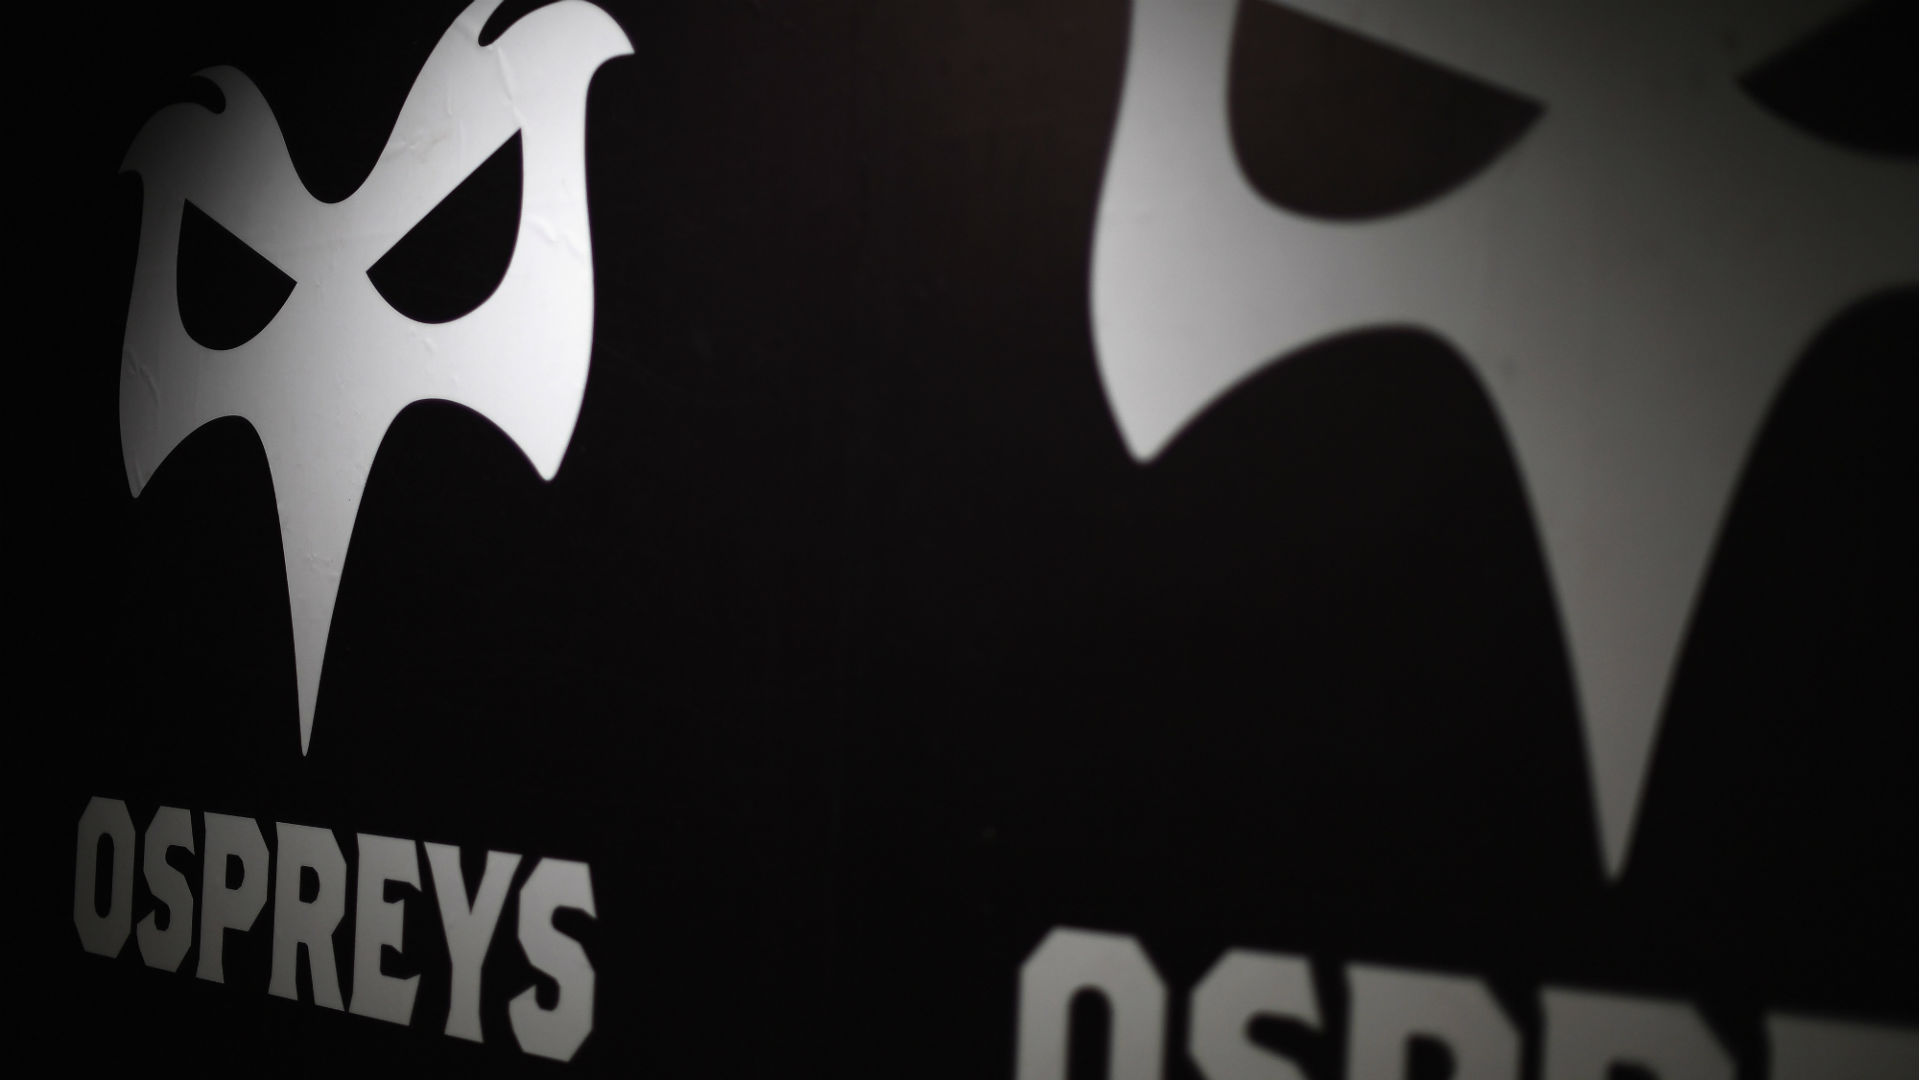 Ospreys chairman quits as Welsh rugby mulls changes